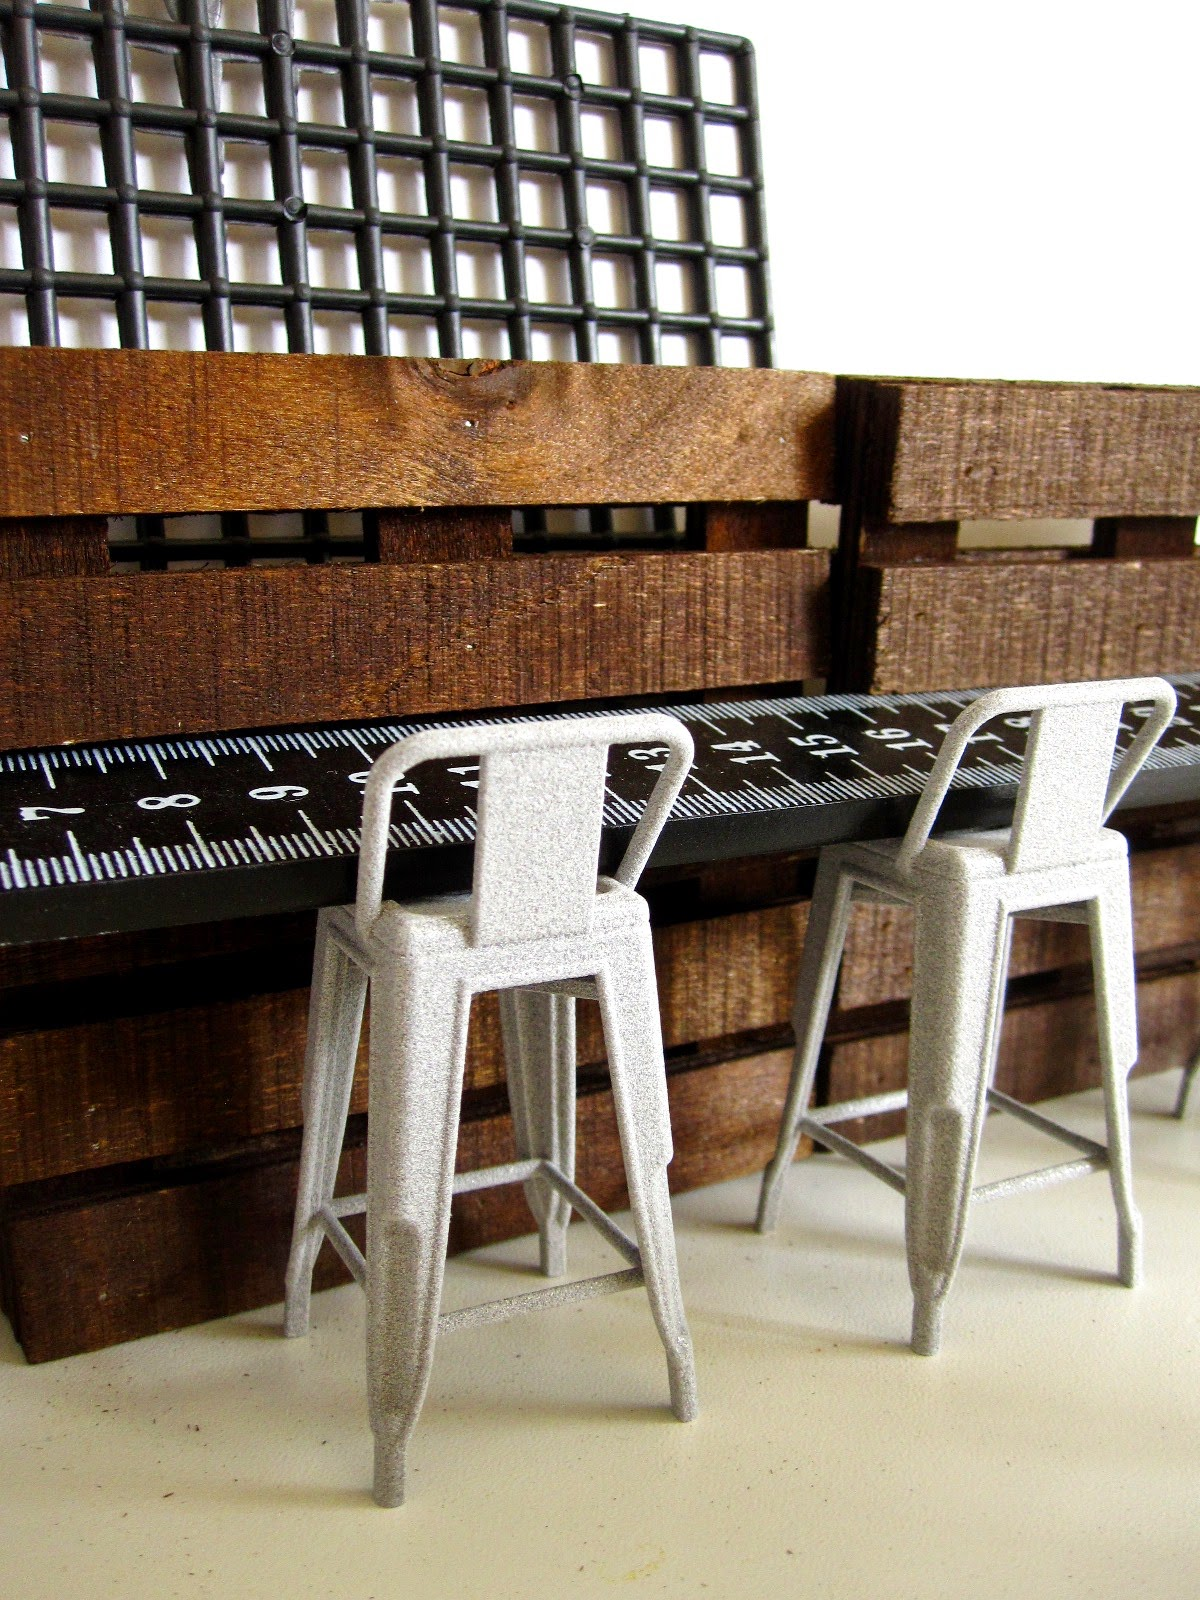 Modern dolls' house miniature cafe stools in front of a counter made from a ruler and miniature pallets.